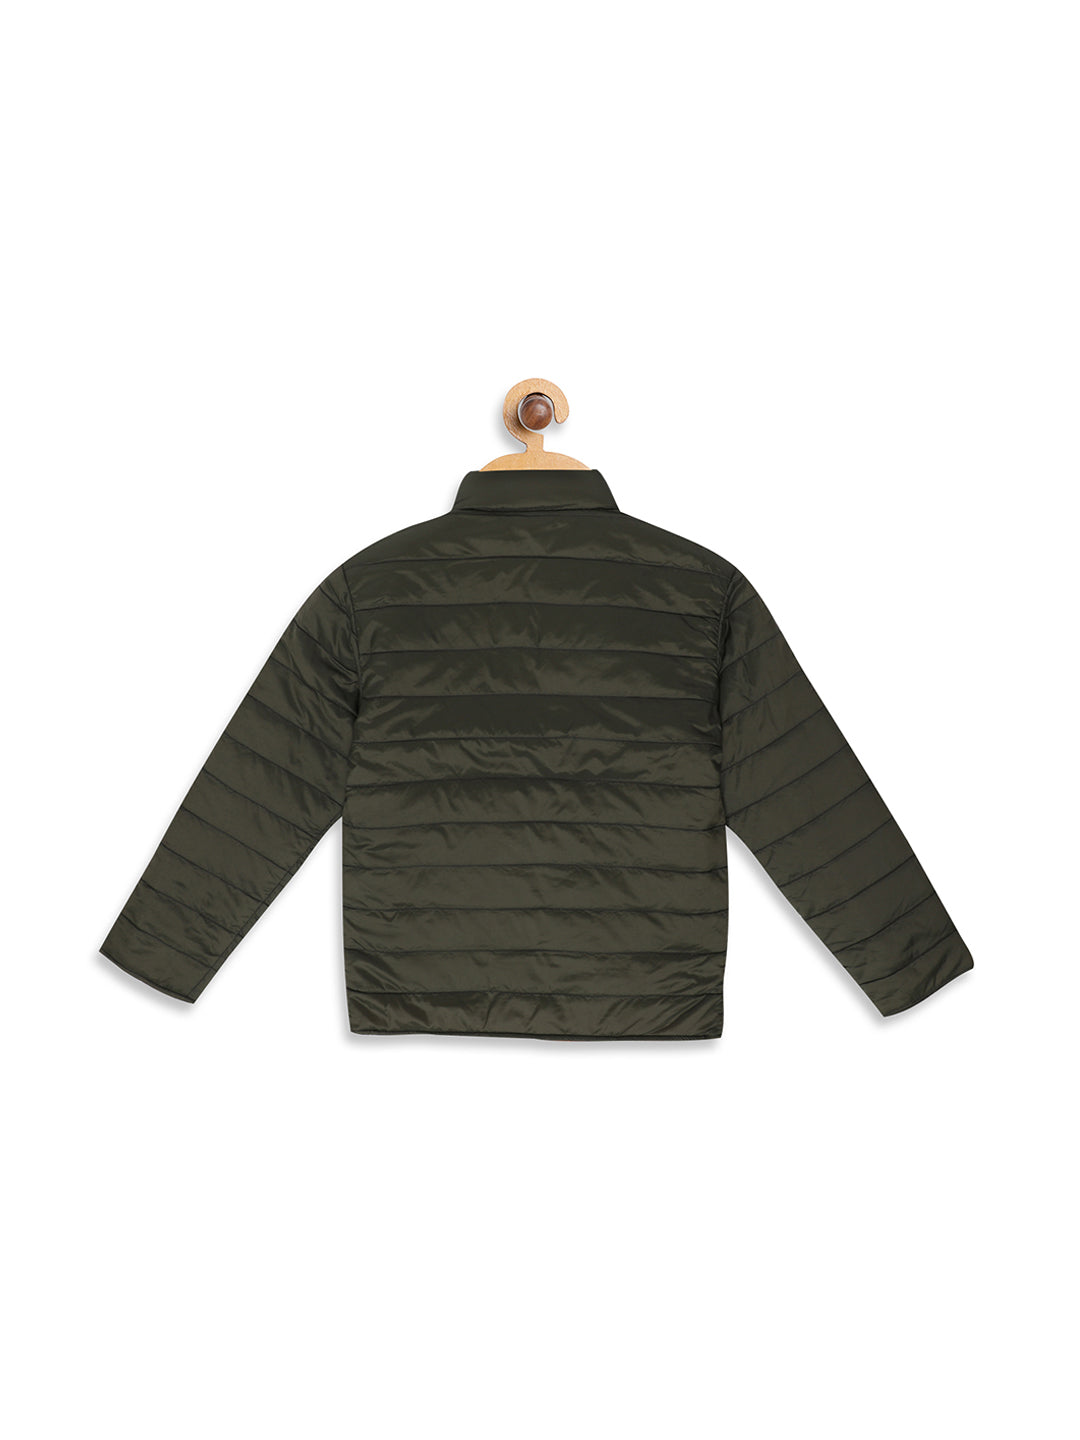 Octave Apparels Olive Yellow Reversible Sweatshirt for Kids